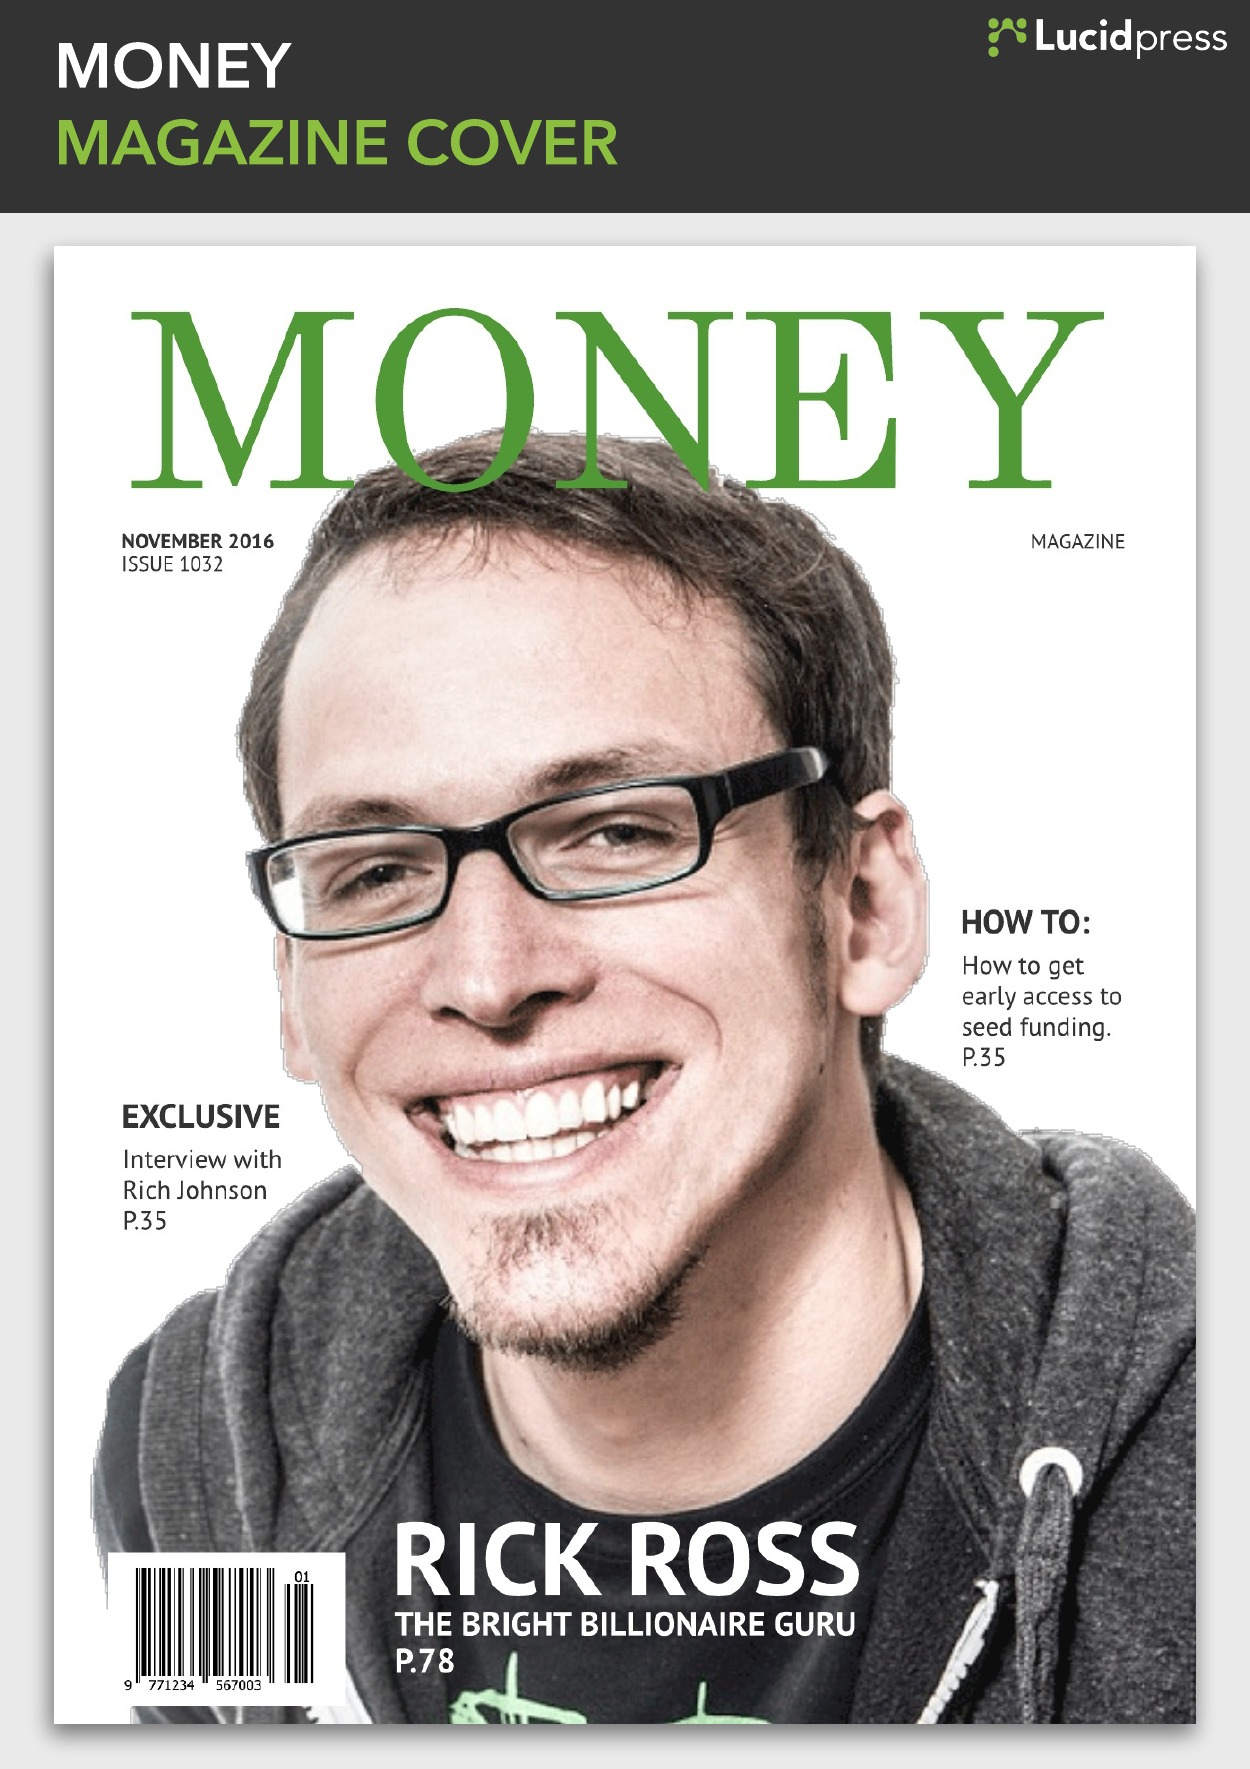 Money Fake Magazine Cover Inspiration